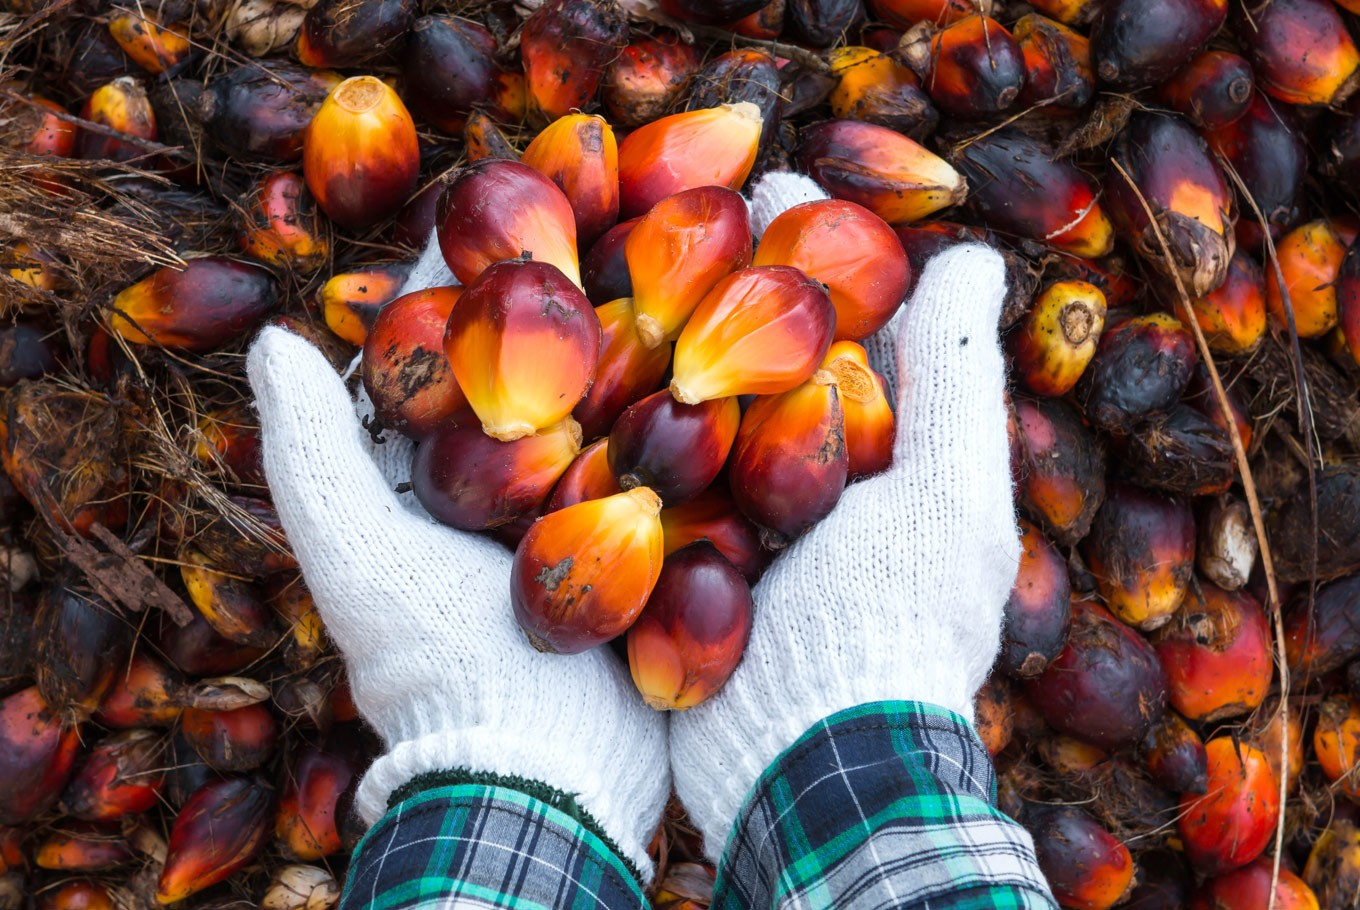 Farmers dispute palm oil prosperity claims